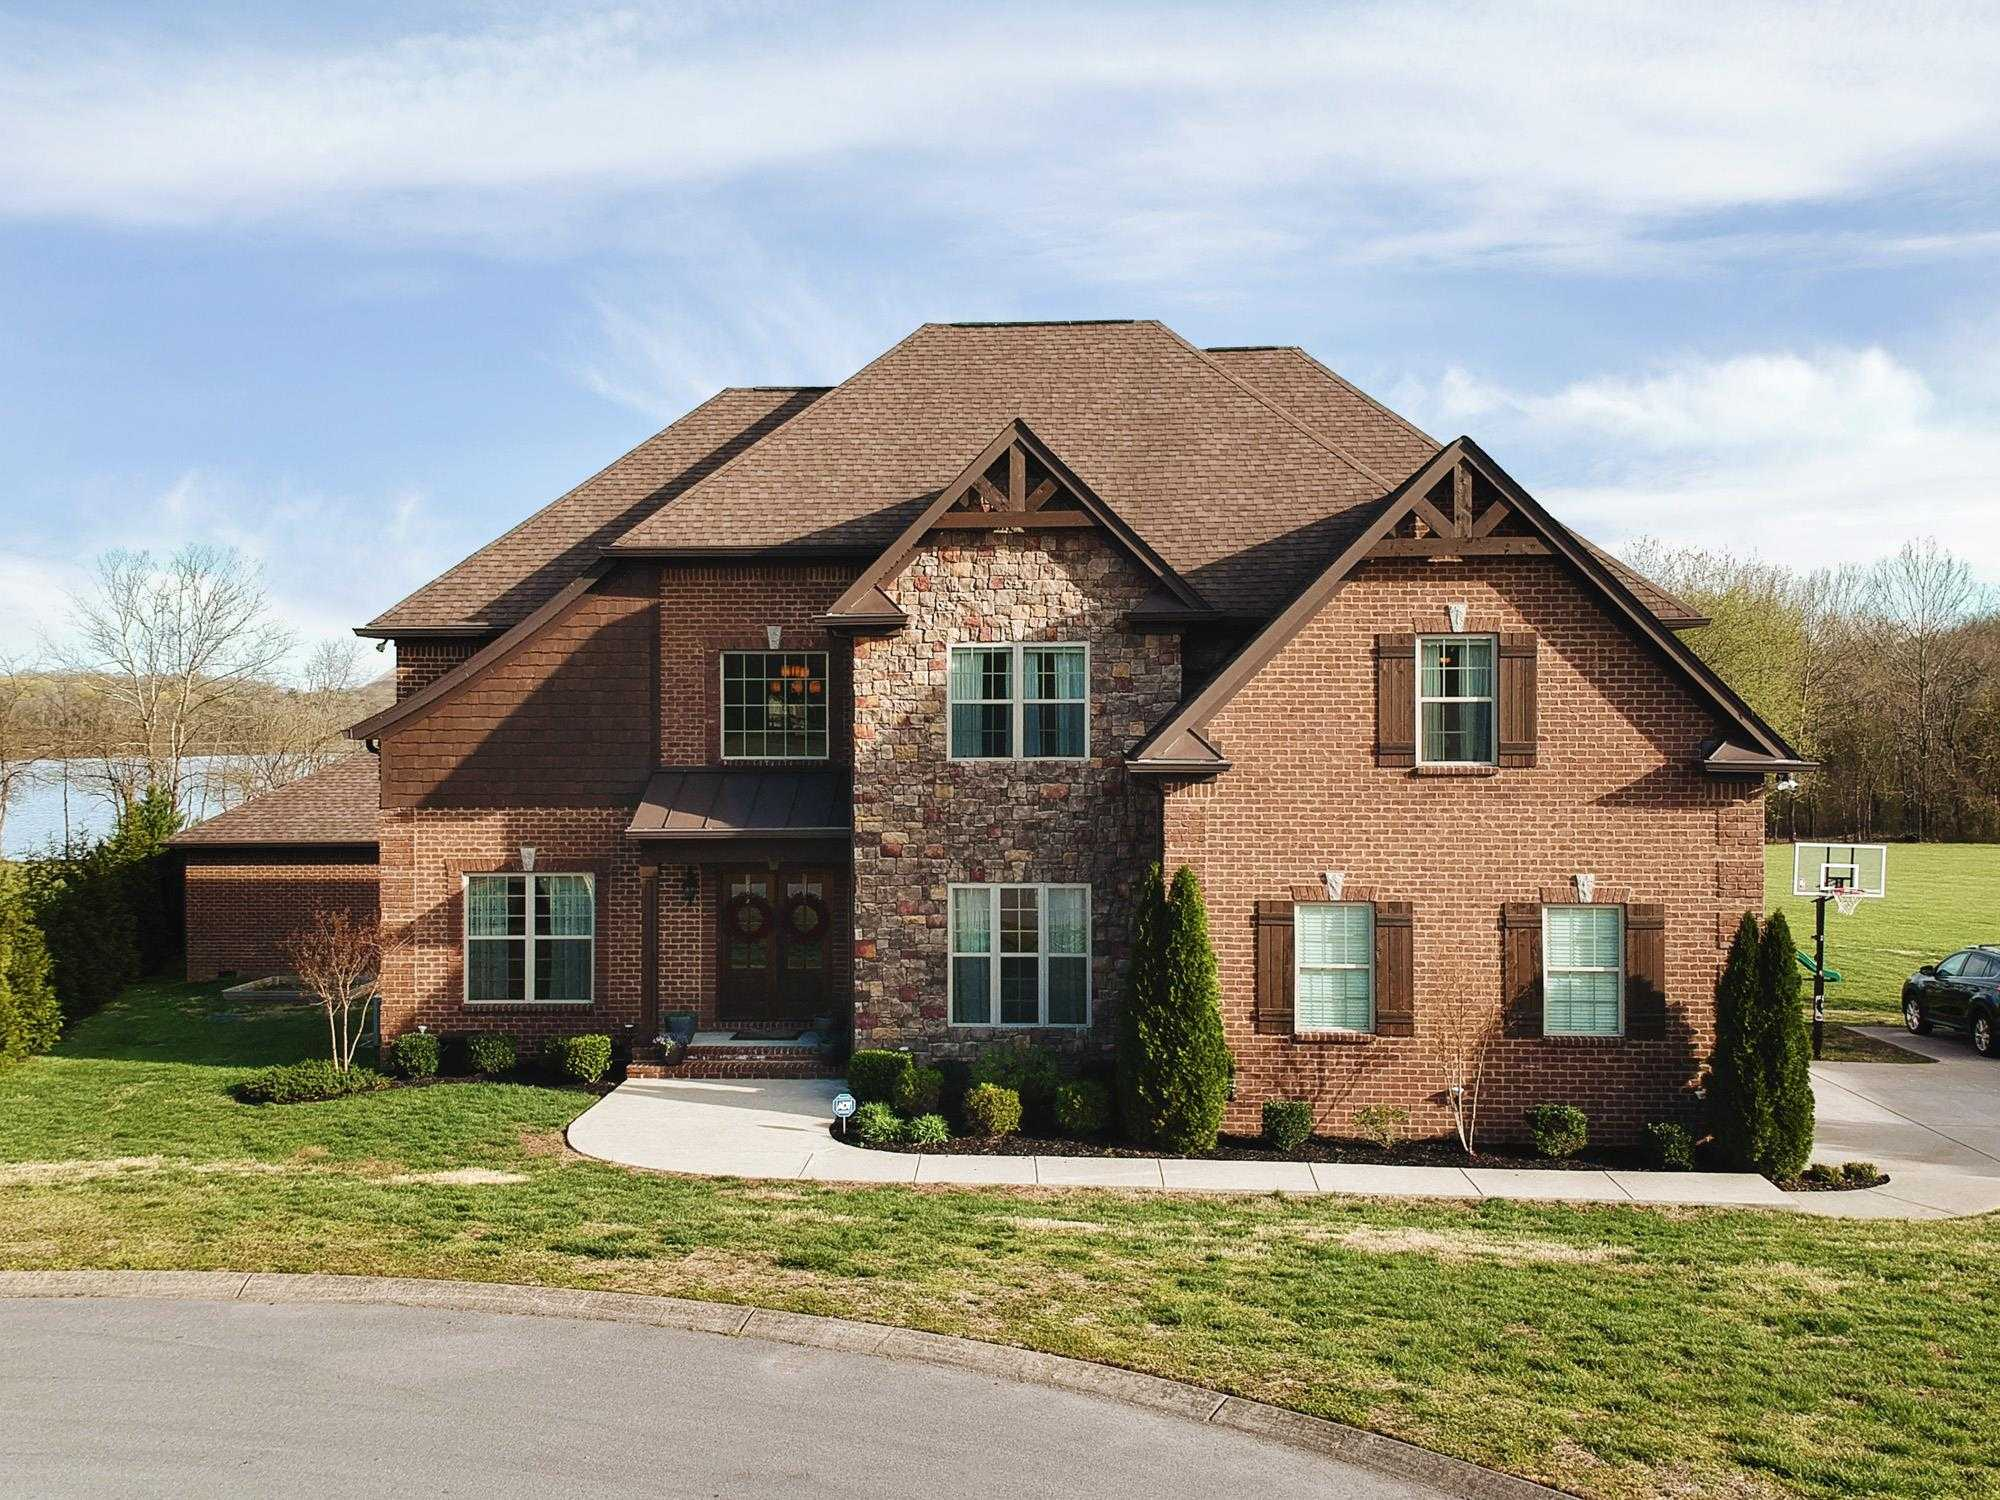 $799,900 - 5Br/5Ba -  for Sale in Camelot Cove Ph 1, Mount Juliet